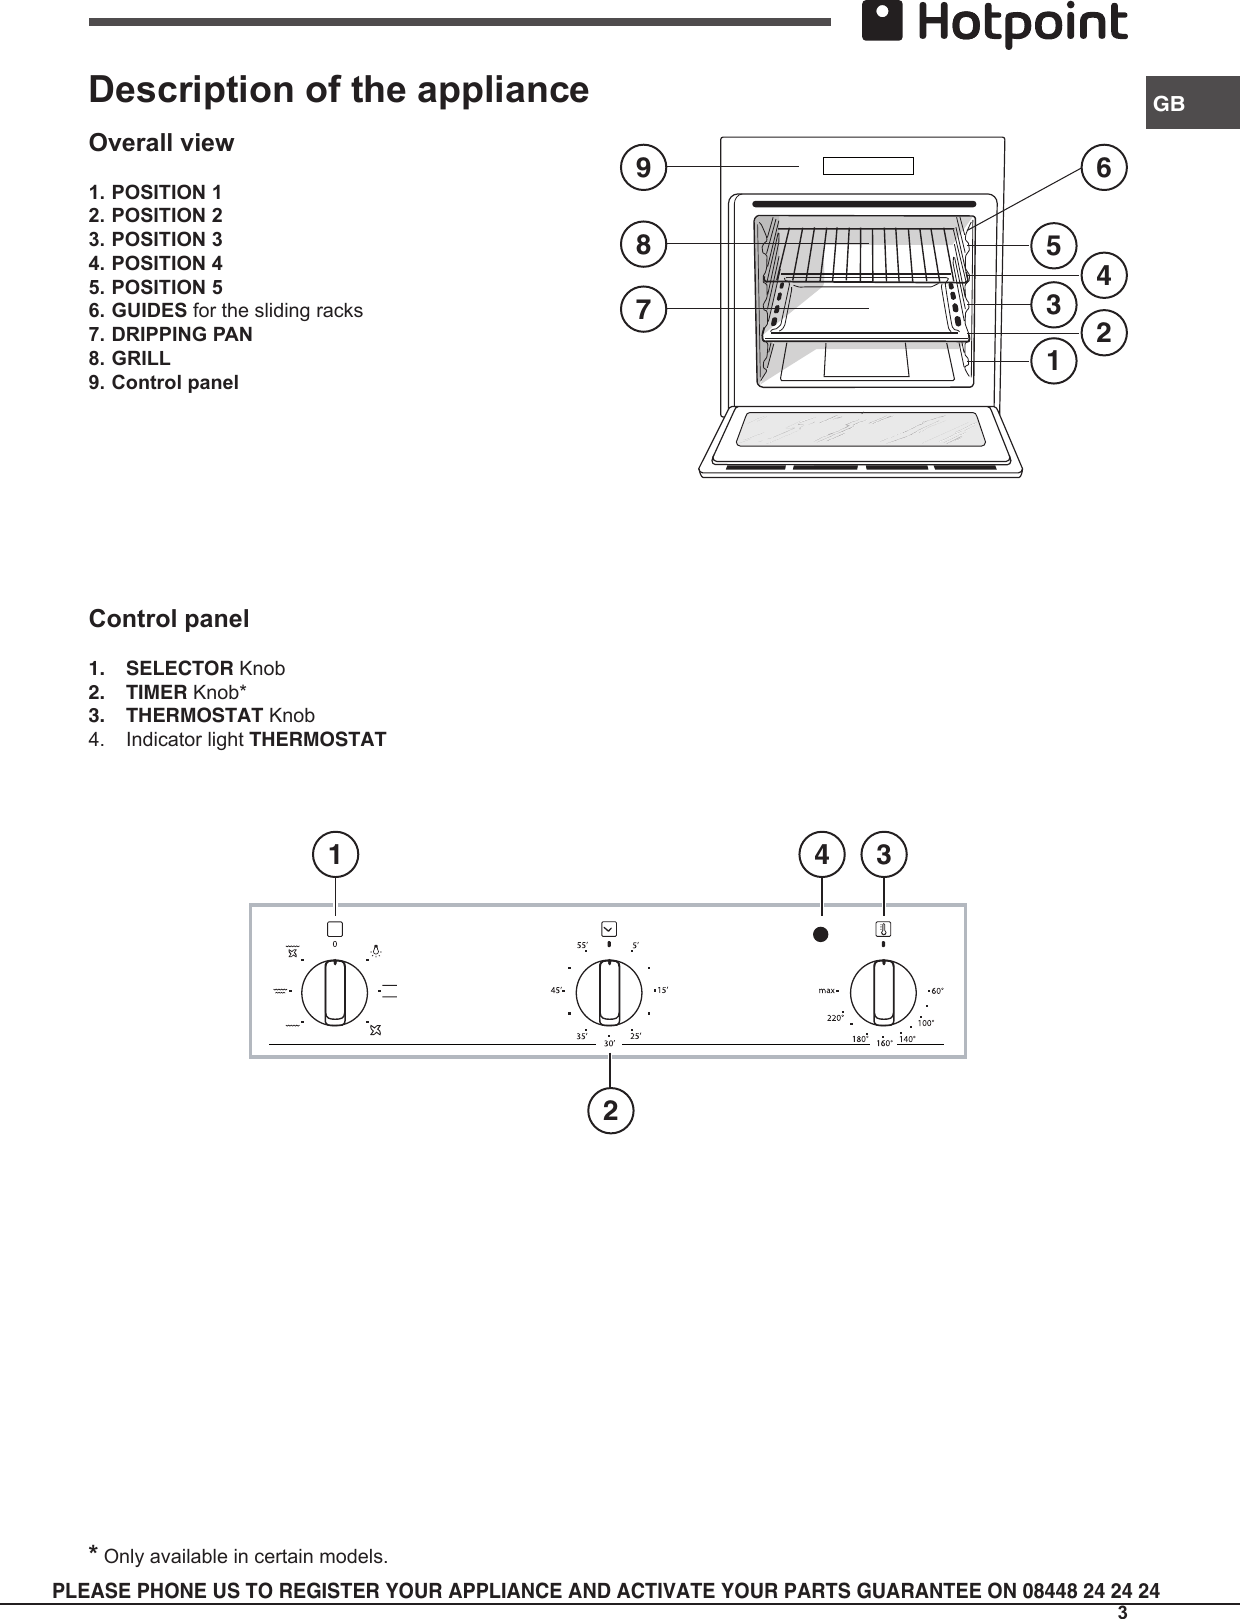 Hotpoint Oven Accessories Sbs 51 X S Users Manual Forno ...